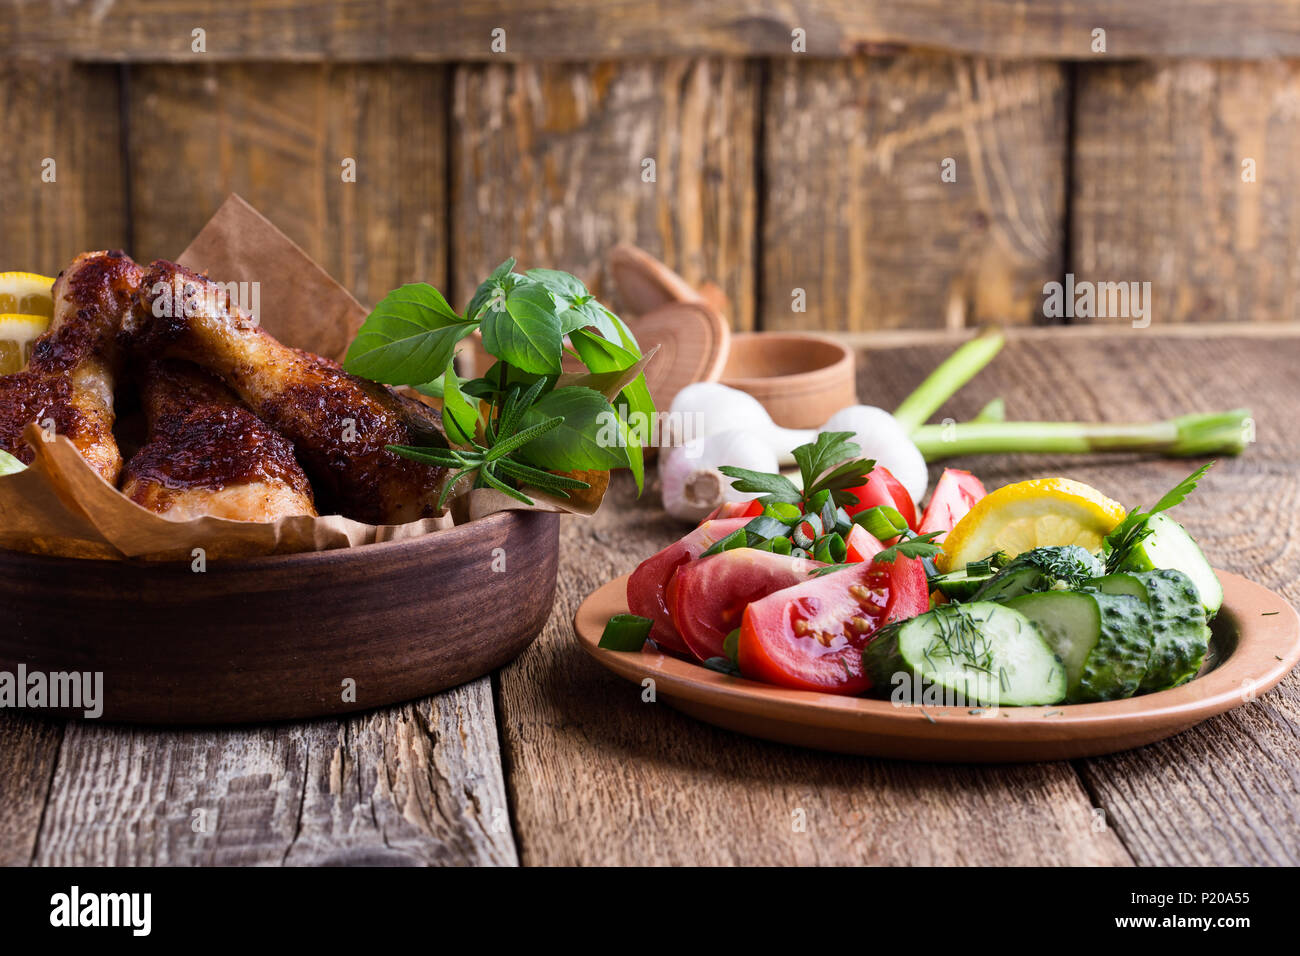 Roasted chicken drumsticks in ceramic bowl and fresh vegetables on rustic wooden table, favorite meal - Stock Image